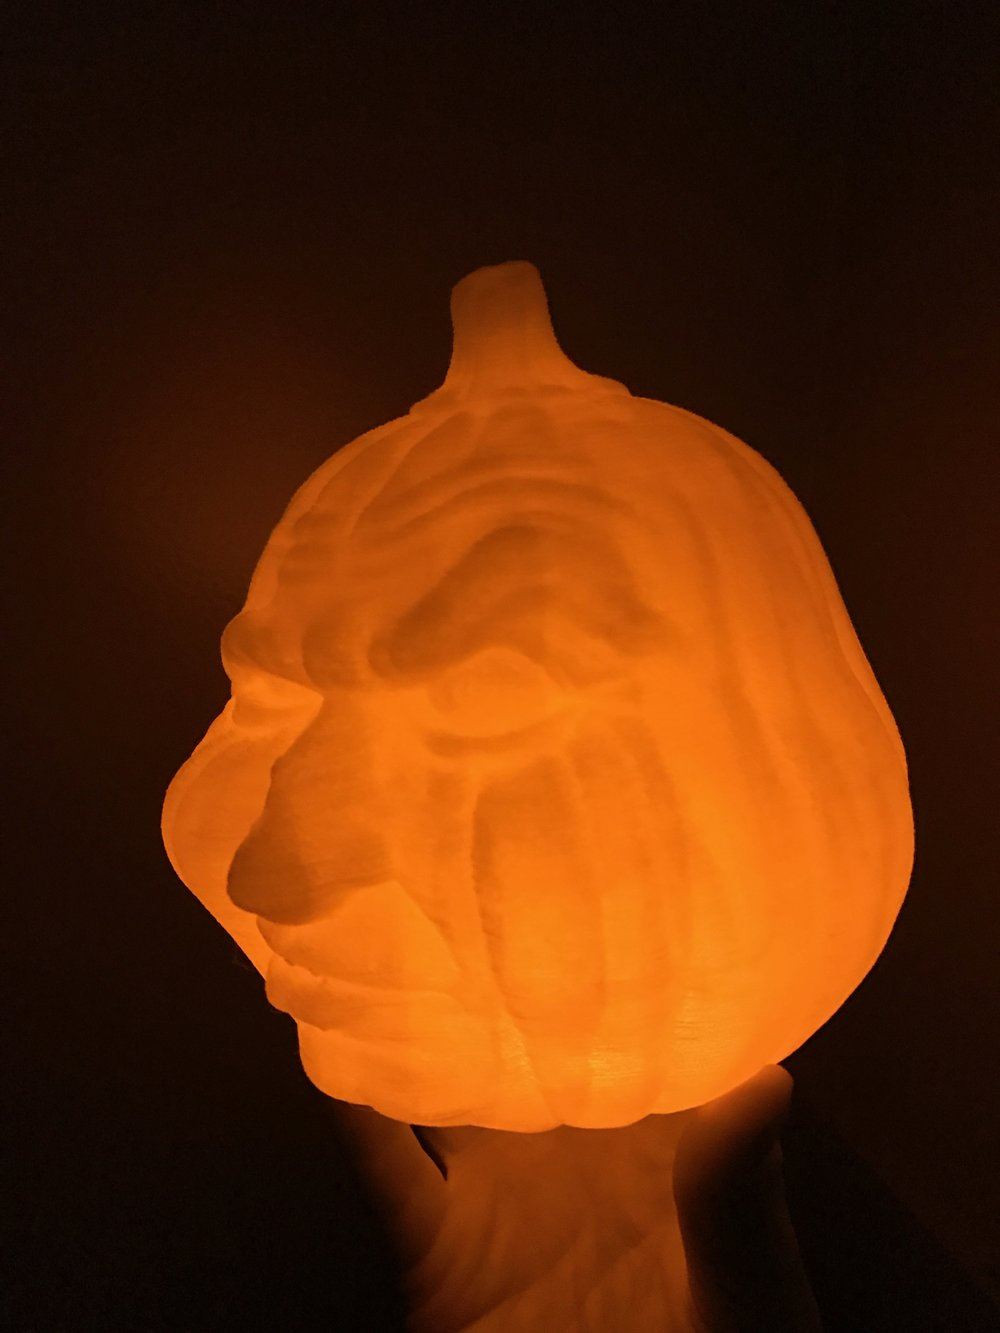 A 3D Printed Jack O Lantern with an LED candle inside lights up the whole print!